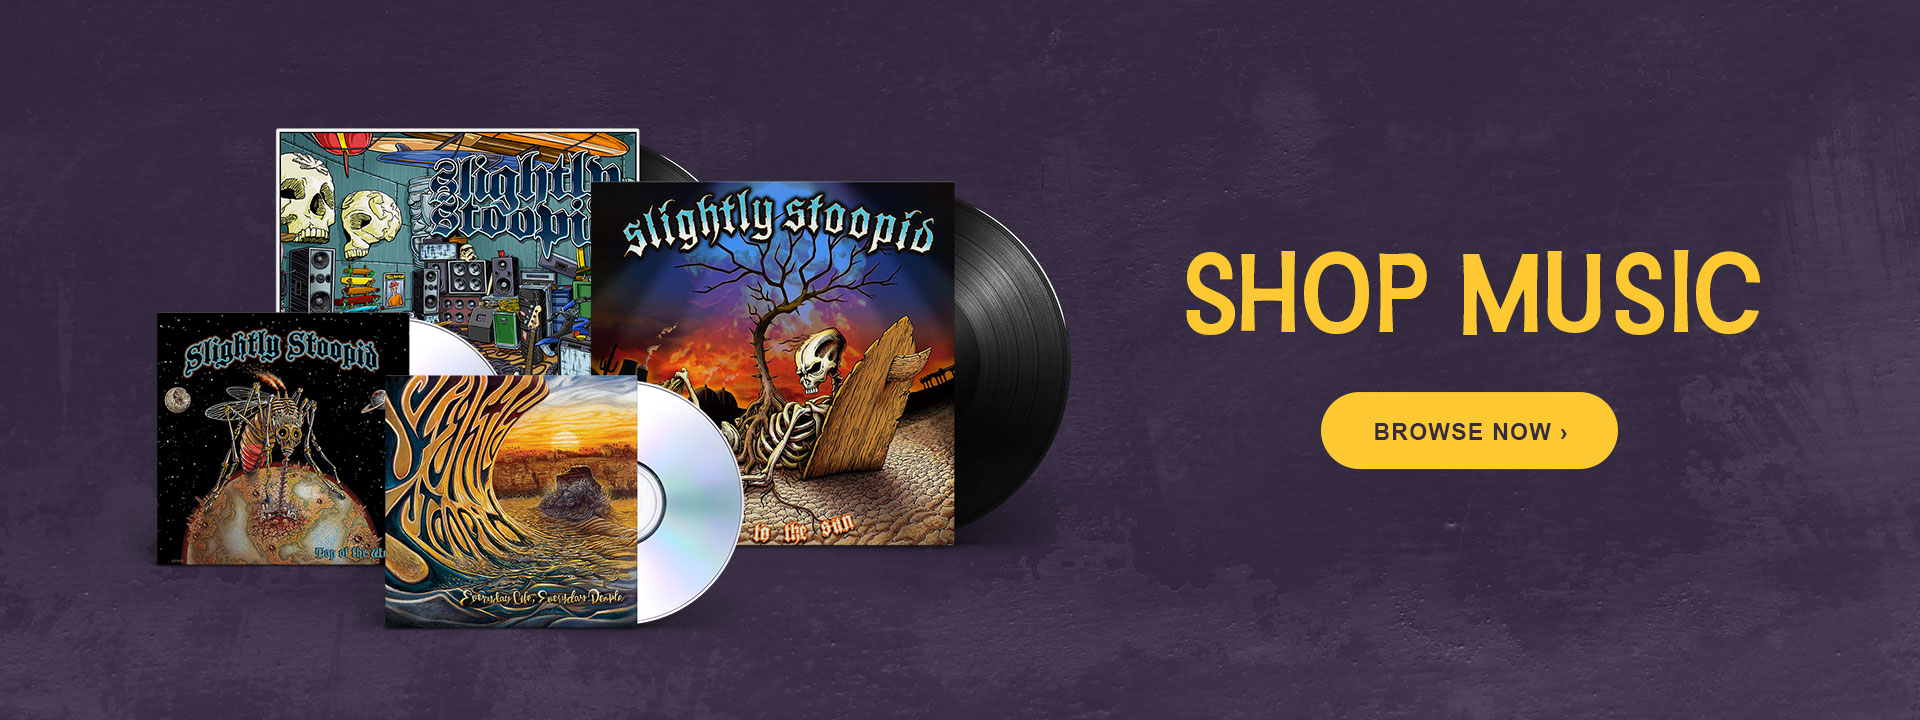 Slightly Stoopid - Music Catalog - Shop Now